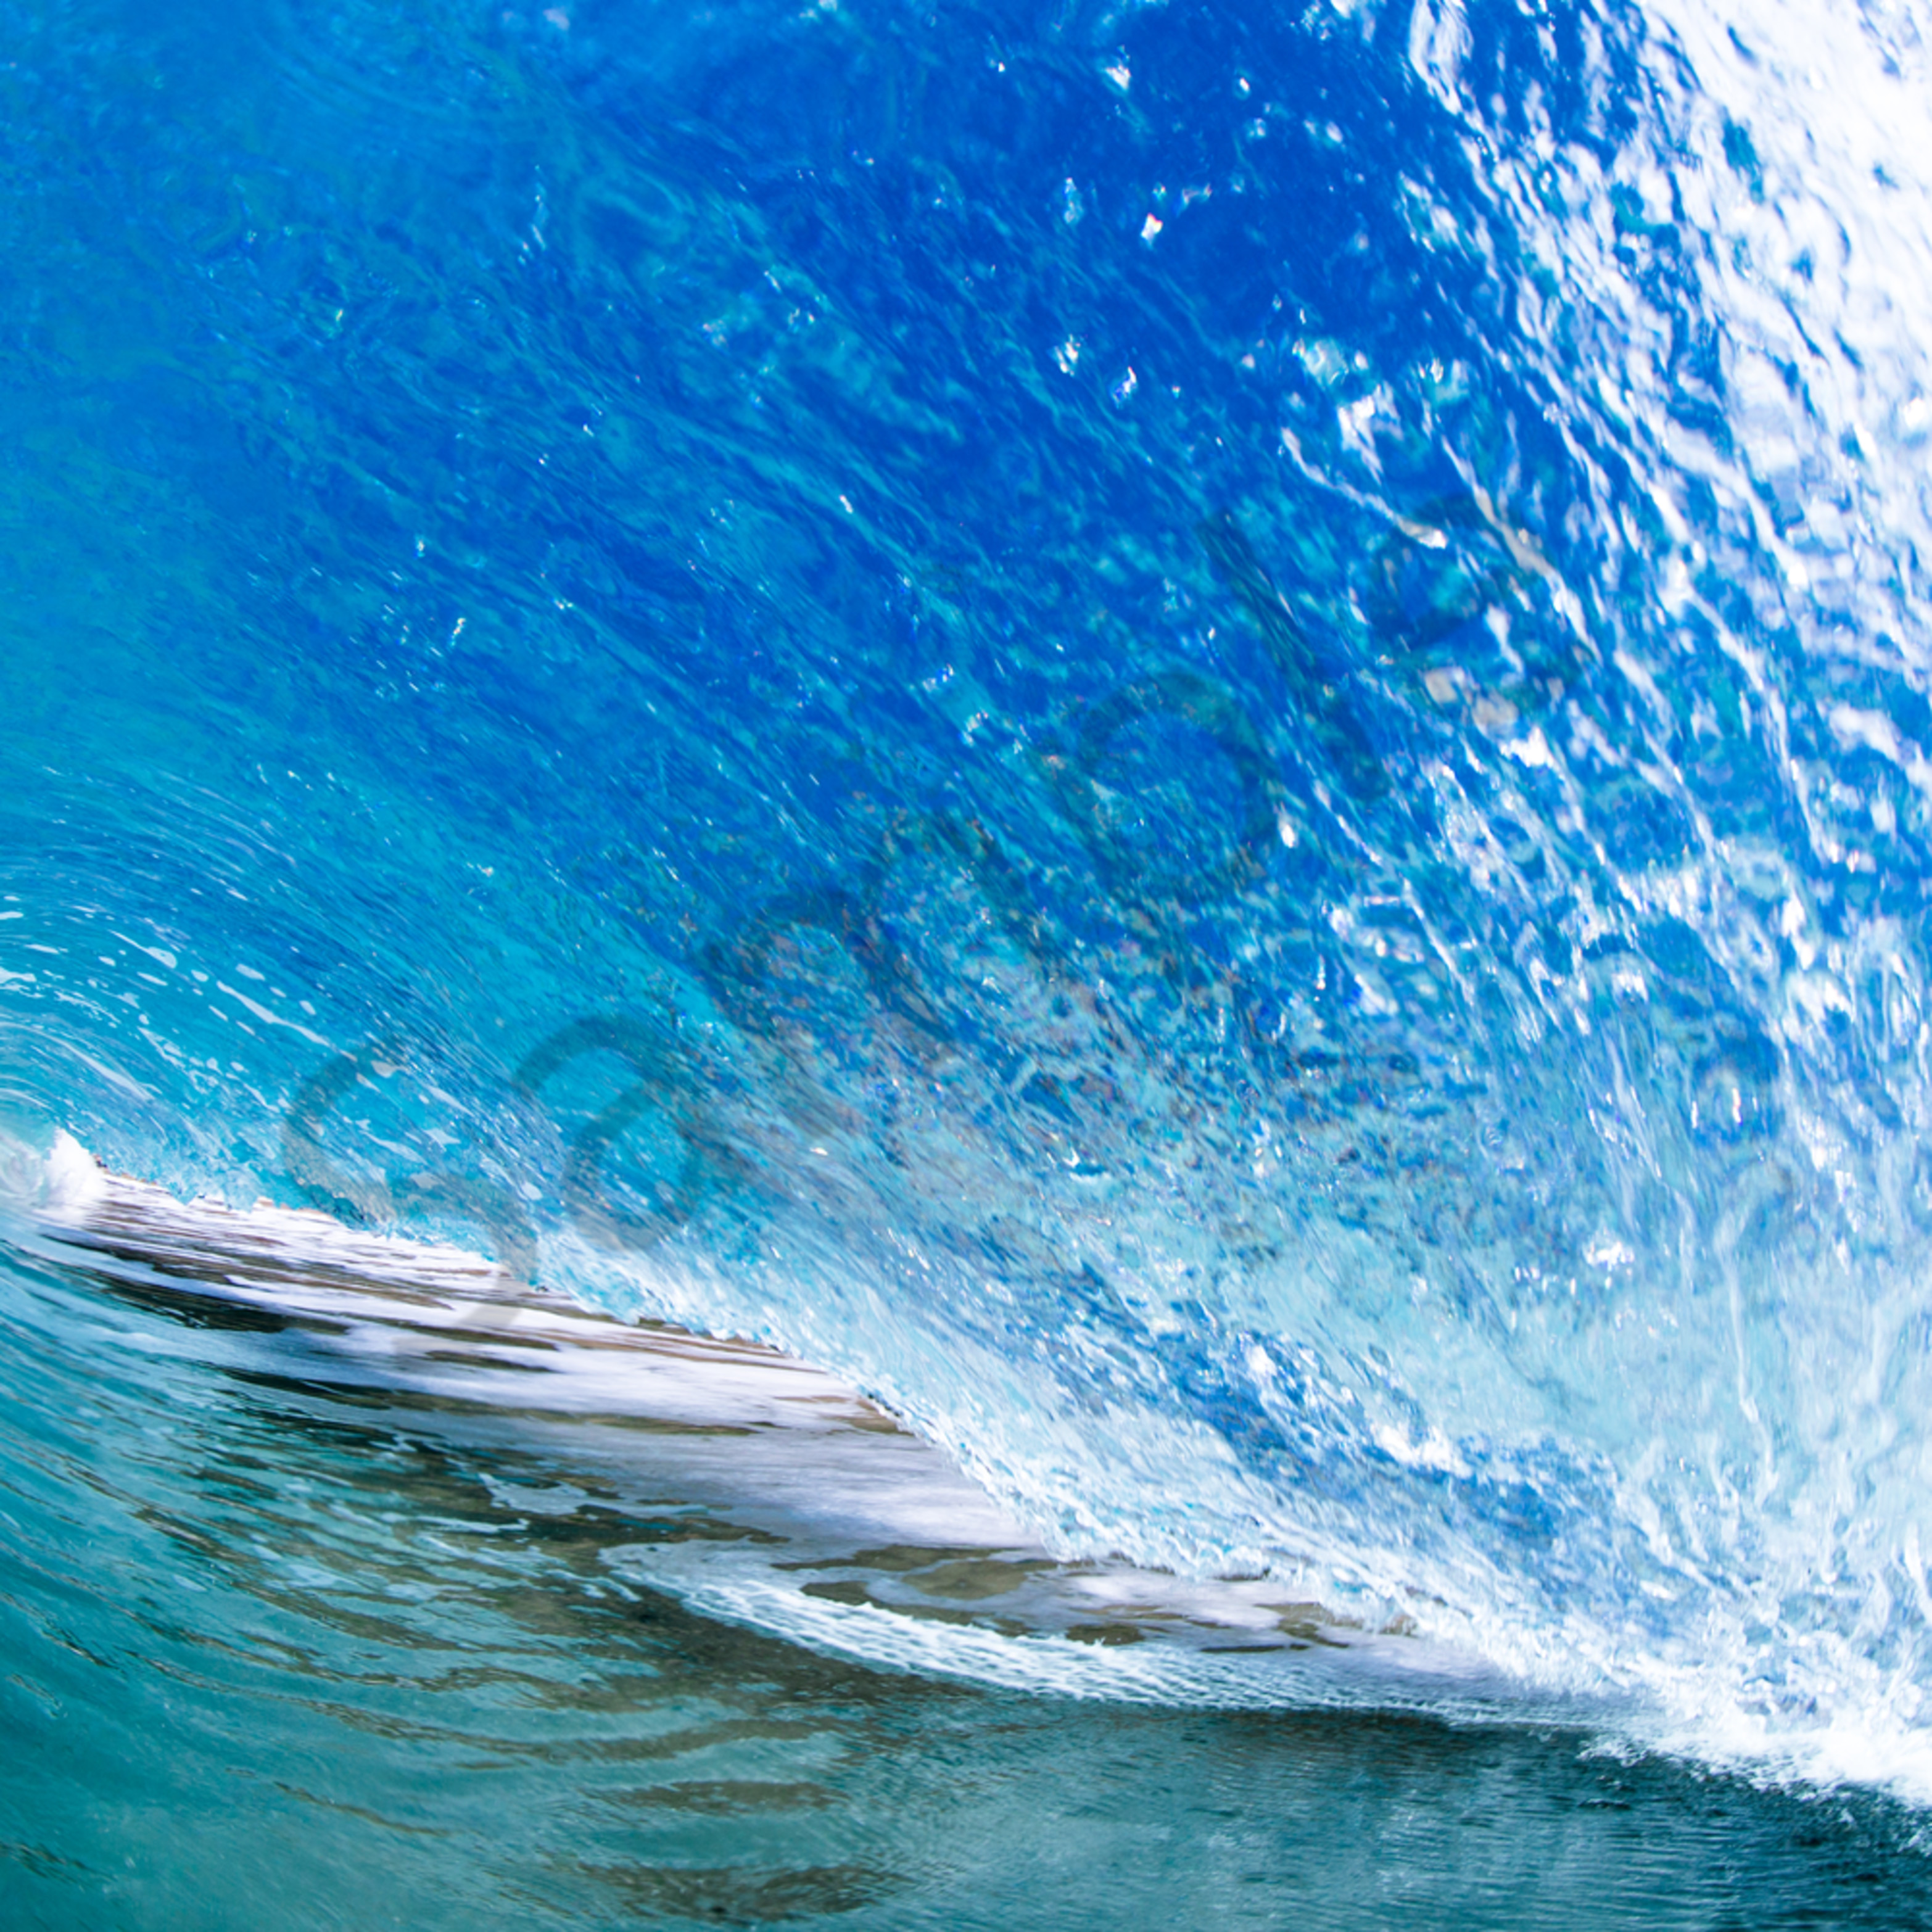 Wave Photography | Deep Impact by Jaysen Patao